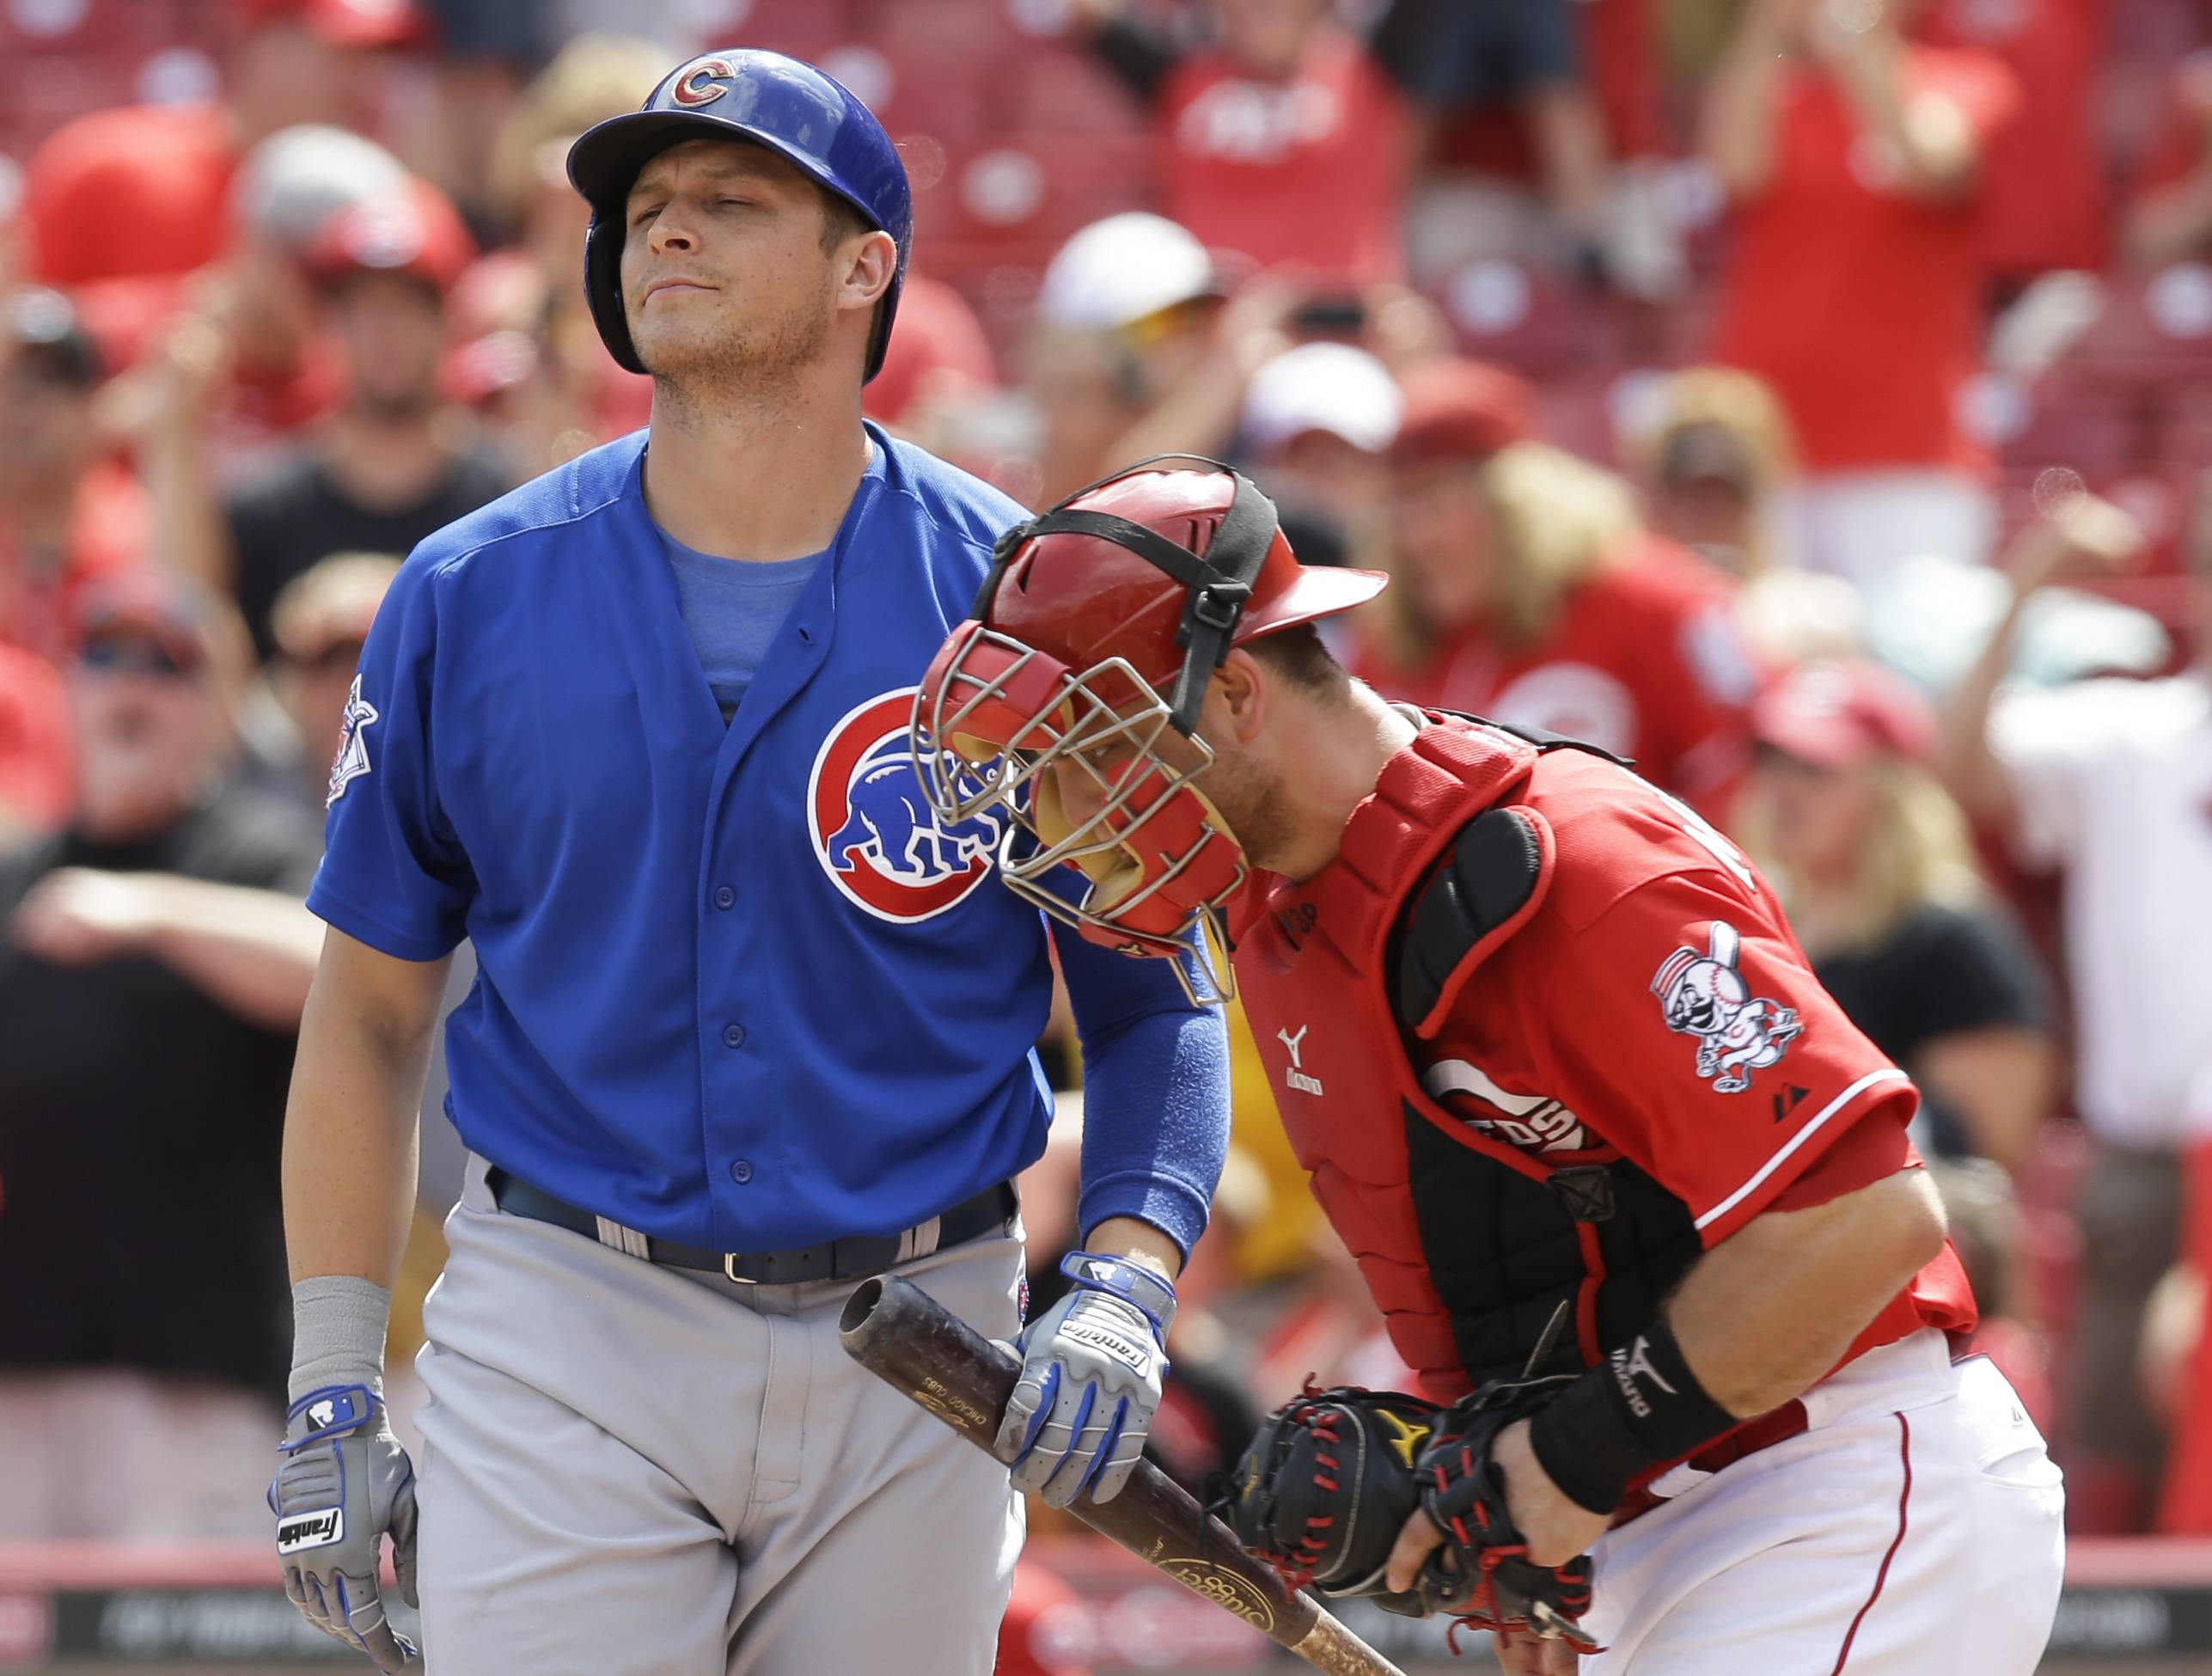 Chicago Cubs' Ryan Sweeney, left, strikes out against Cincinnati Reds relief pitcher Aroldis Chapman to end a baseball game, Tuesday, July 8, 2014, in Cincinnati. Catcher Devin Mesoraco runs to the mound at right. Cincinnati won 4-2.